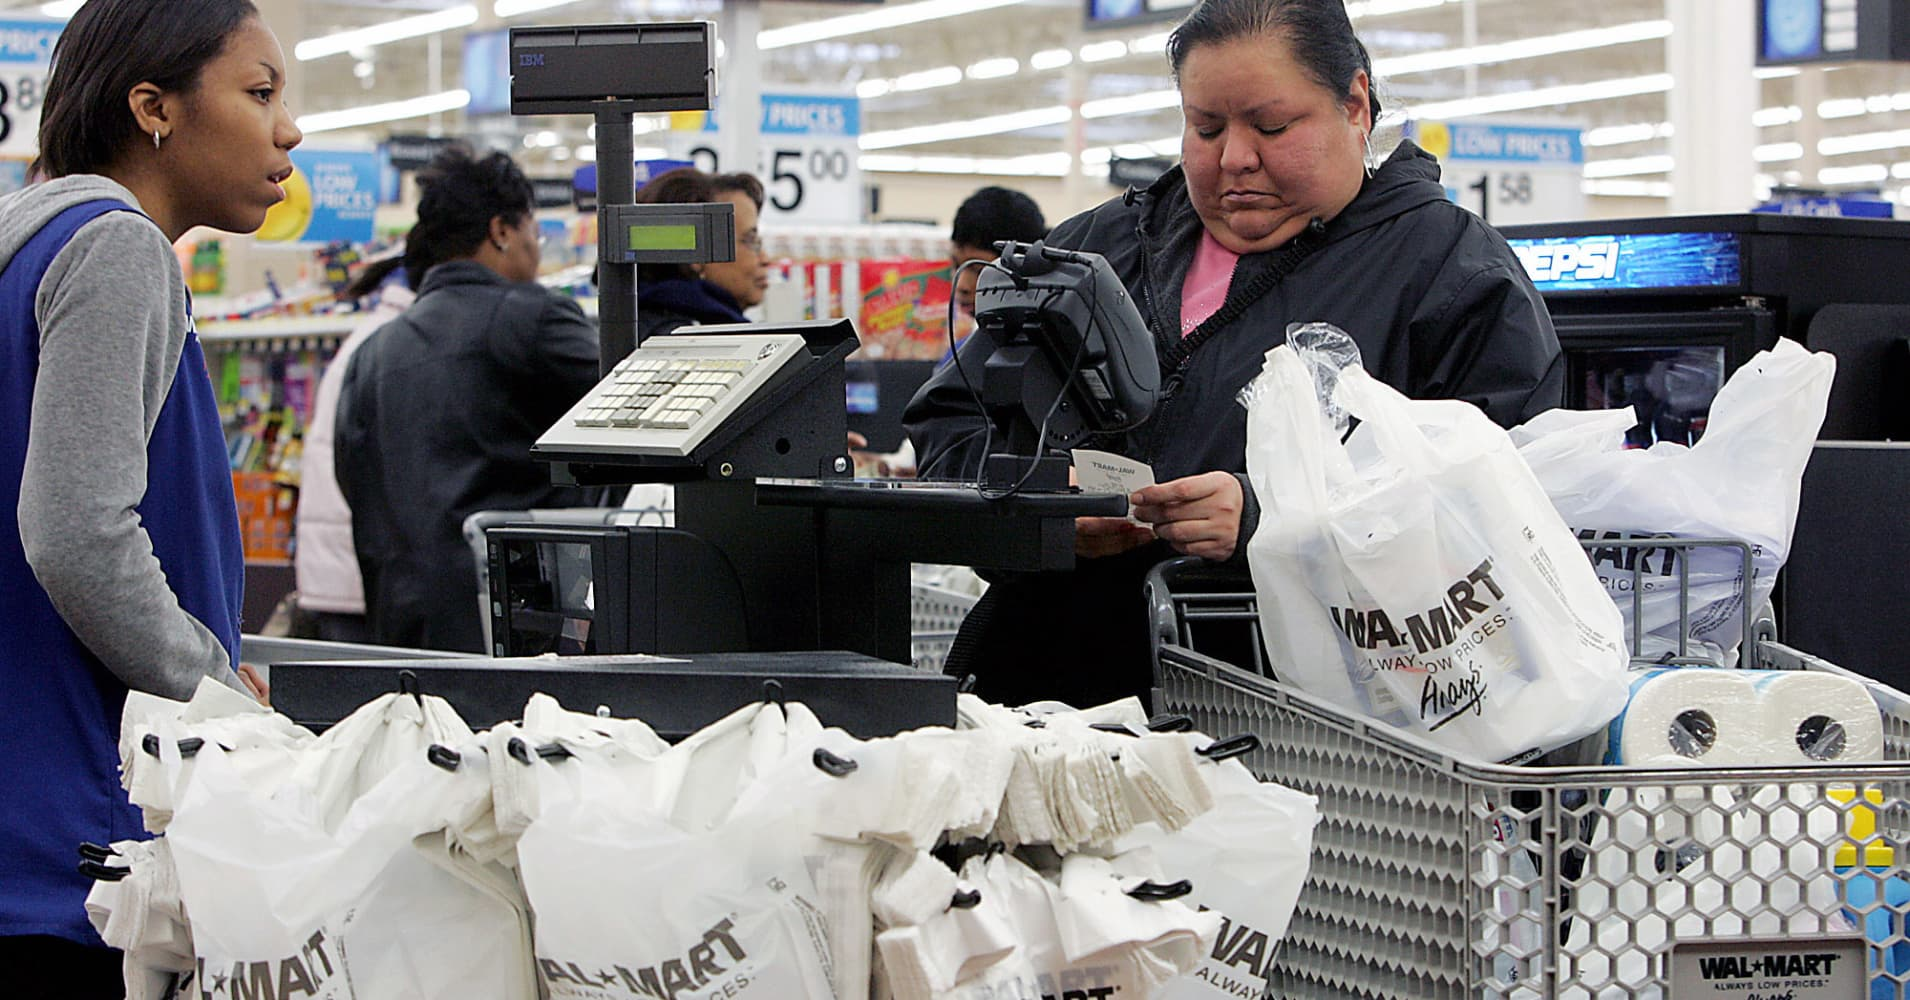 924be17ce7 Wal-Mart saves millions by changing plastic bags